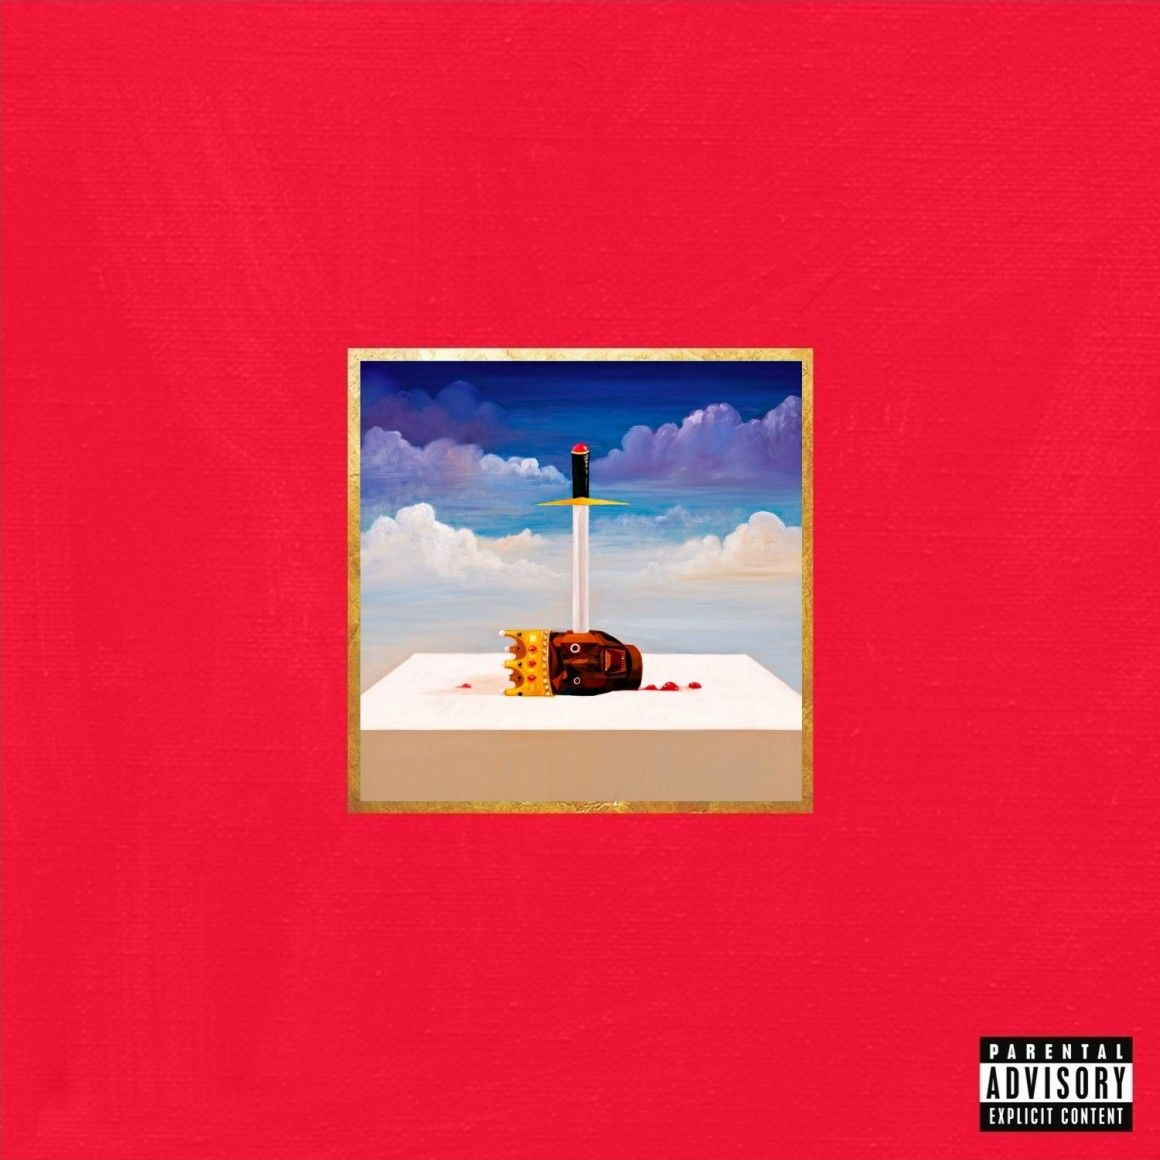 Mbdtf Cover 1160x1160 Jpg 1160 1160 Beautiful Dark Twisted Fantasy Kanye West Album Cover George Condo